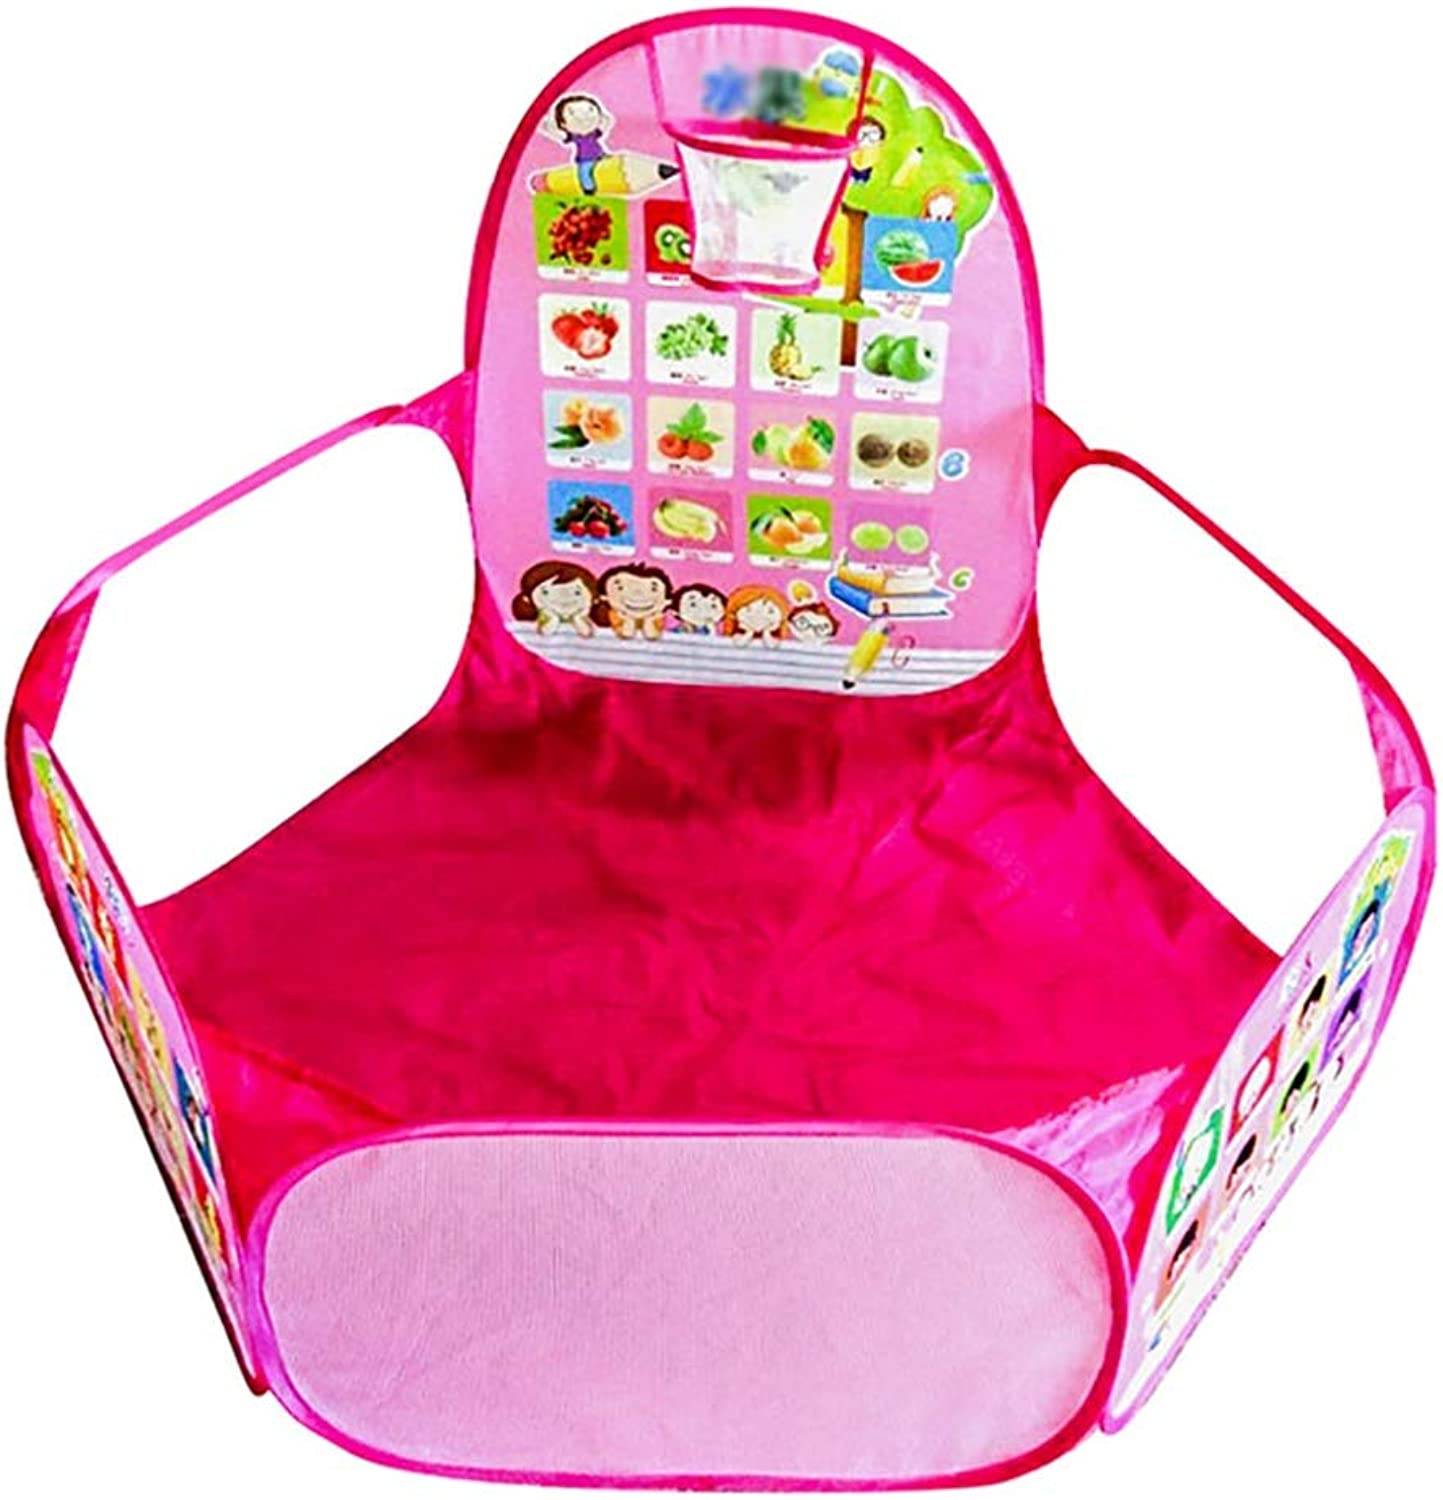 Baby Playpen Portable Activity Center Playard Indoor and Outdoor Play on the Go Nursery Center Play Yard (color   pink red)